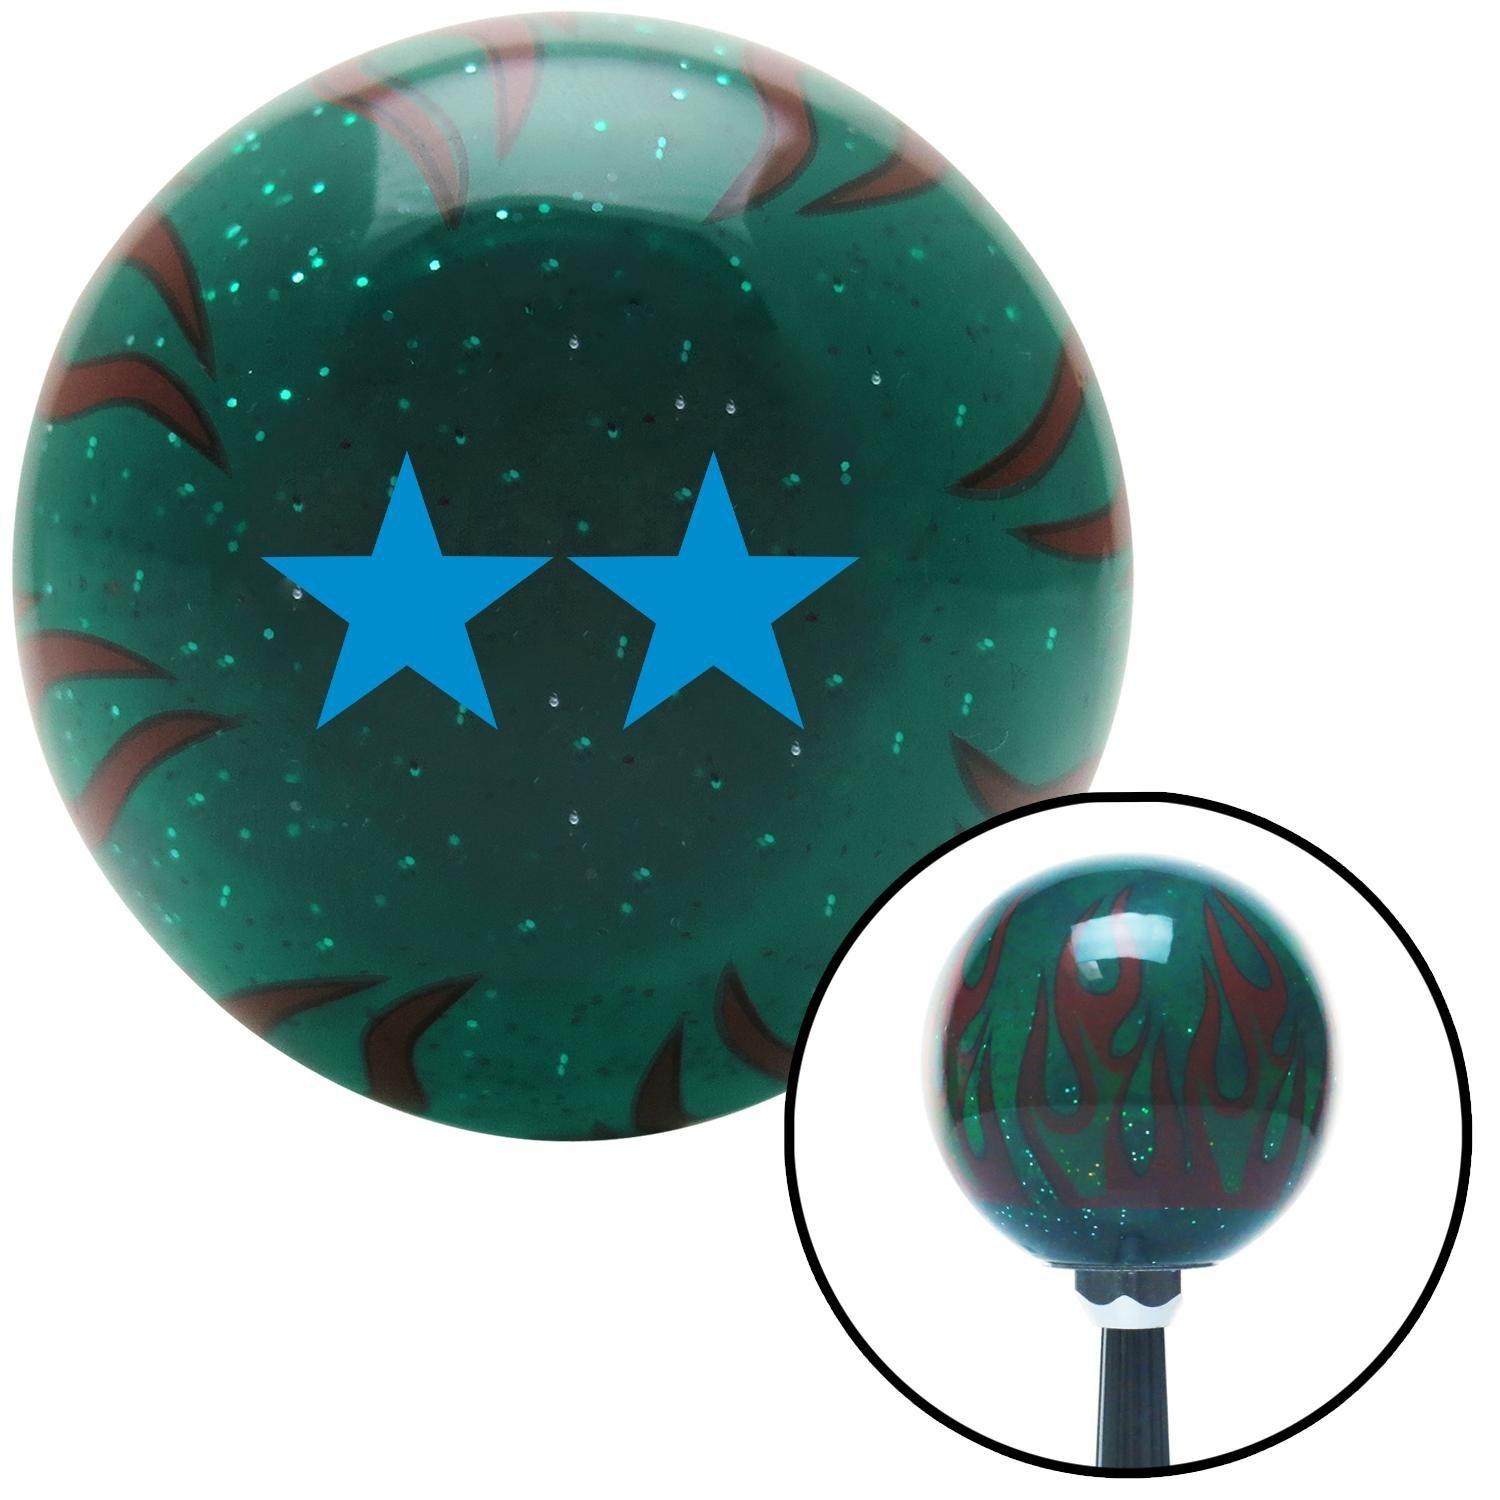 American Shifter 266597 Green Flame Metal Flake Shift Knob with M16 x 1.5 Insert Blue Officer 08 - Major General